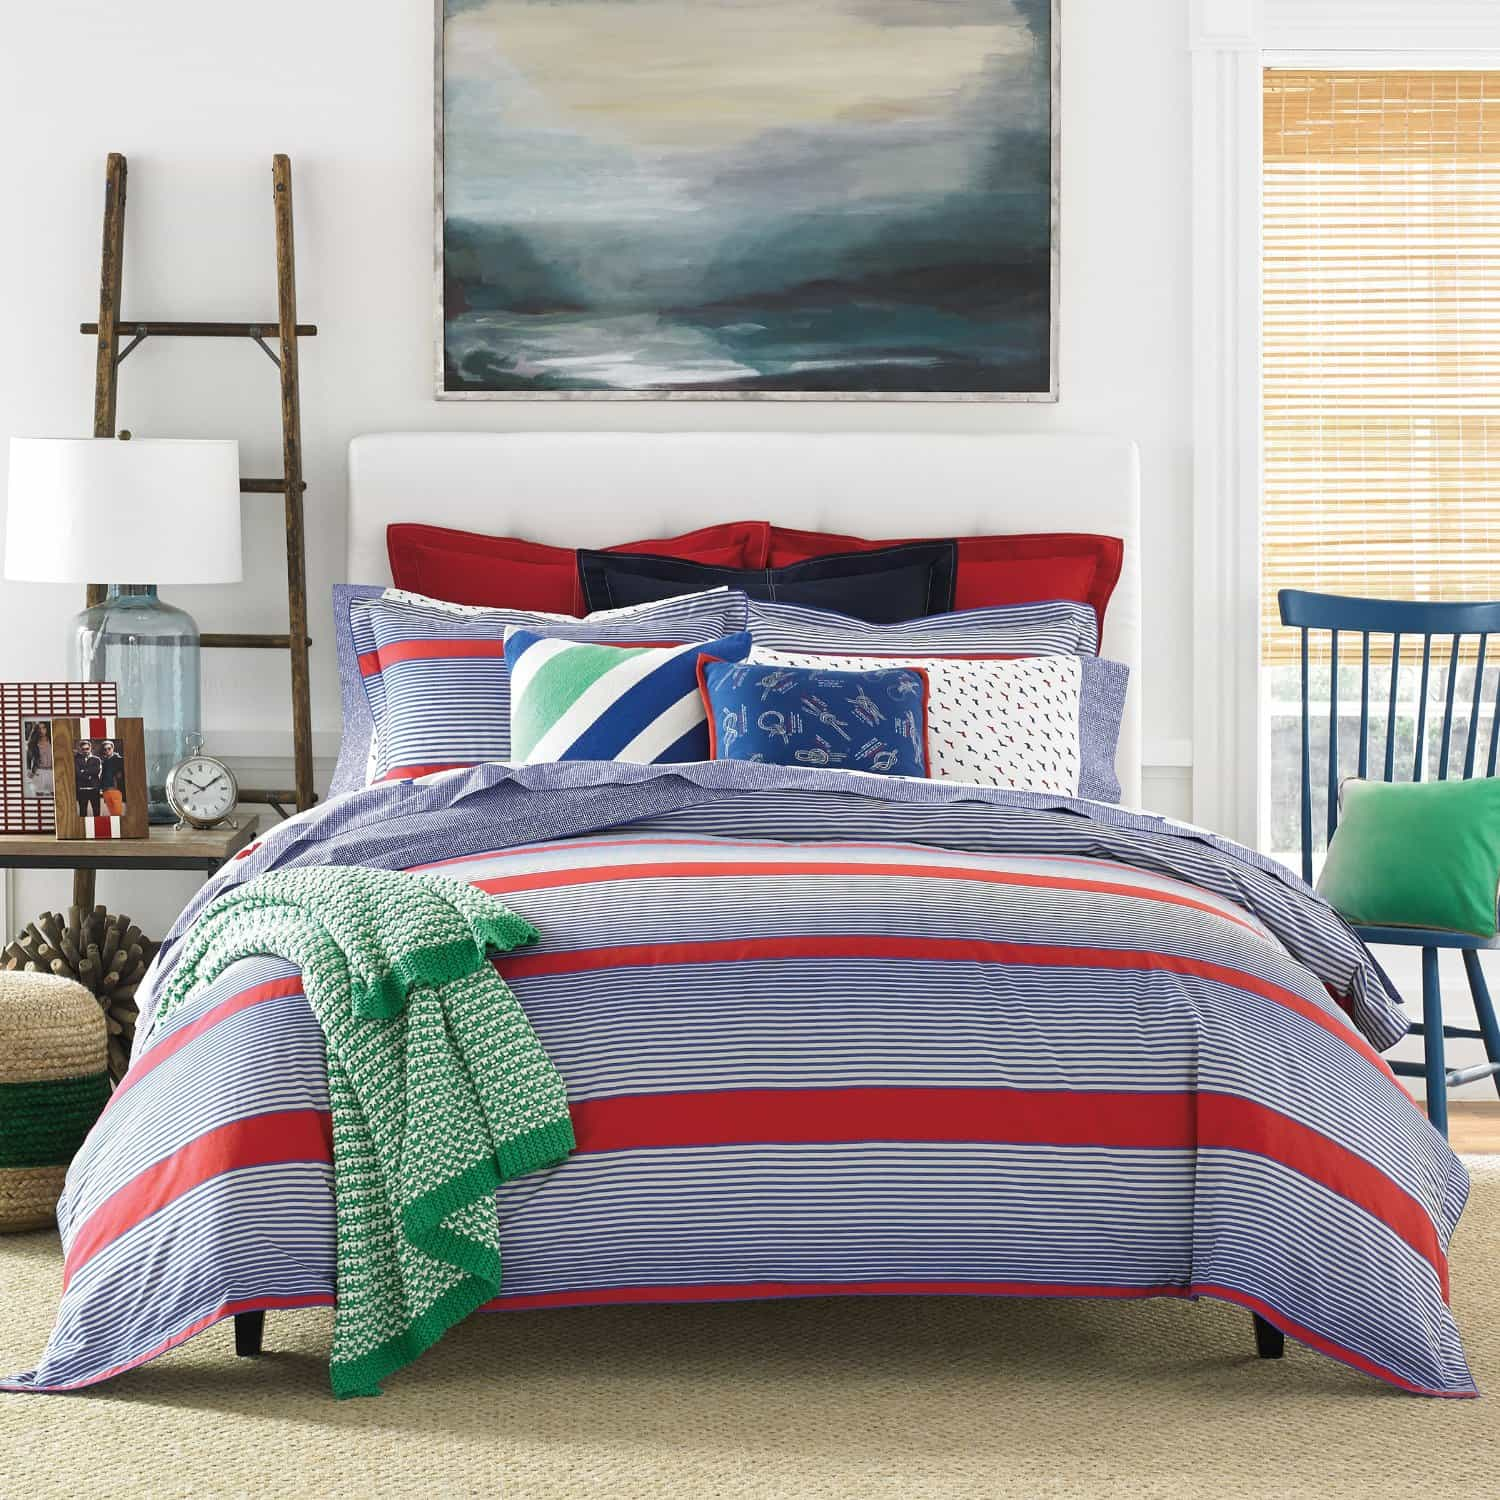 ca224cbd61b36 Best Tommy Hilfiger Comforter Sets 2019 - Reviews   Buyer s Guide